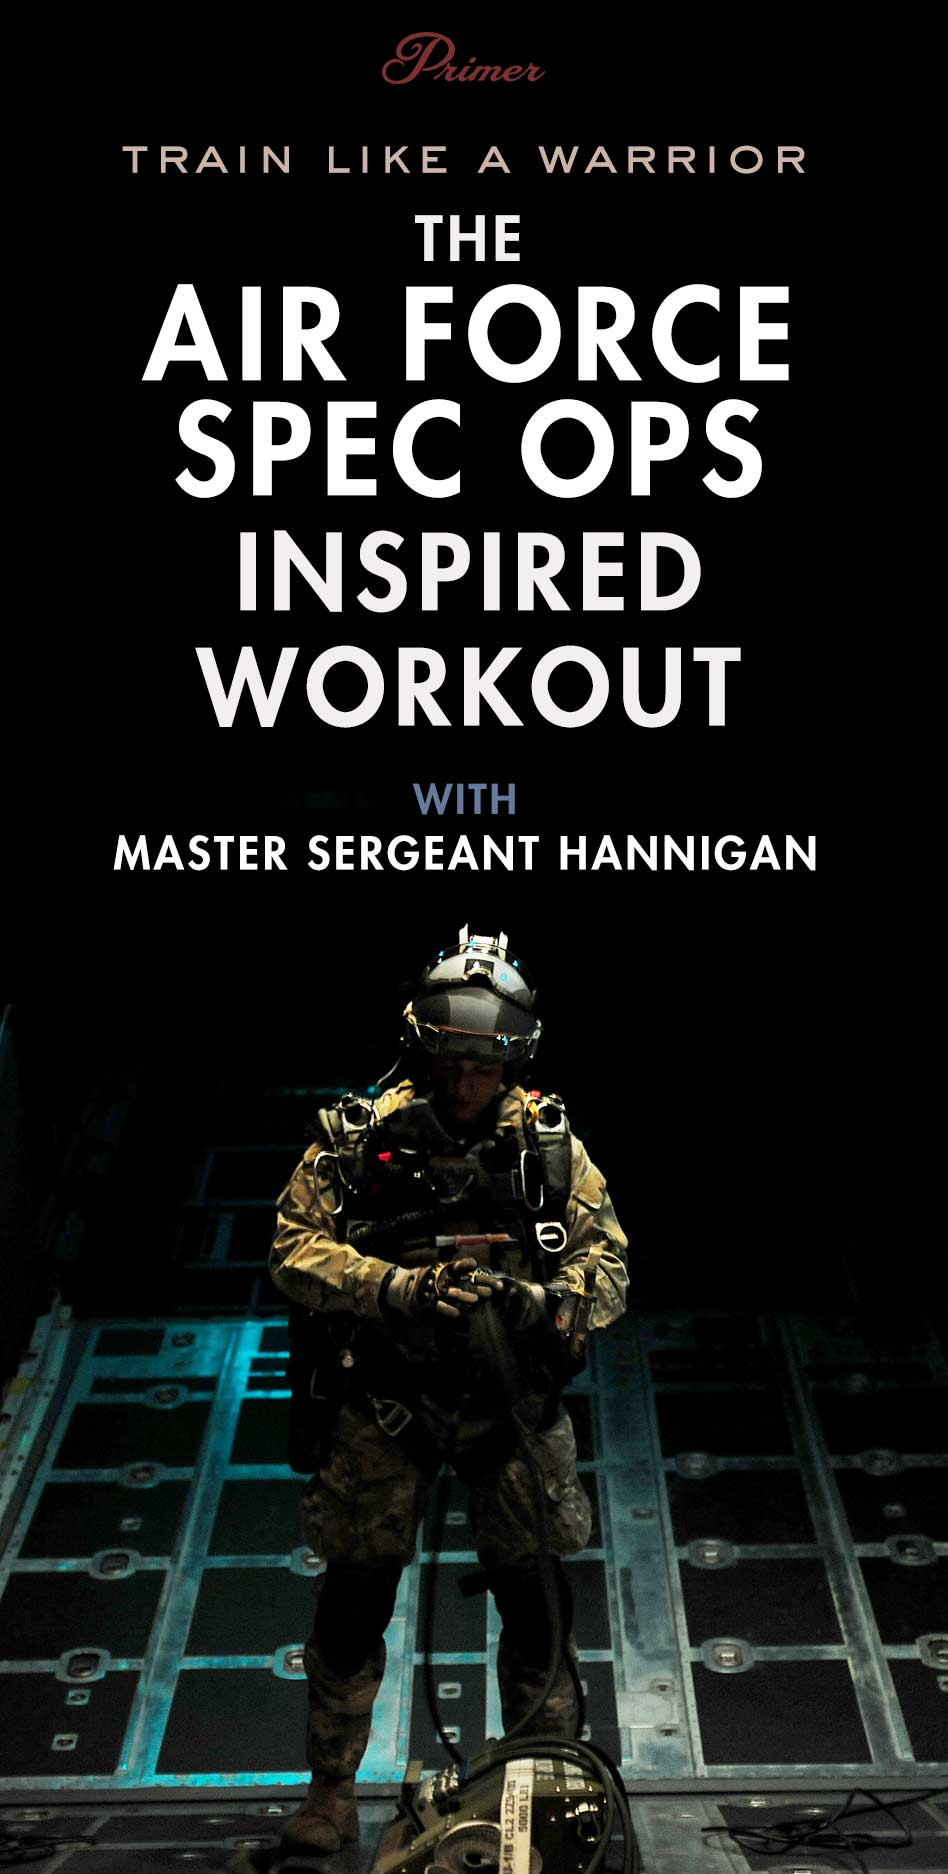 The Air Force Special Ops Workout with Master Sergeant Hannigan